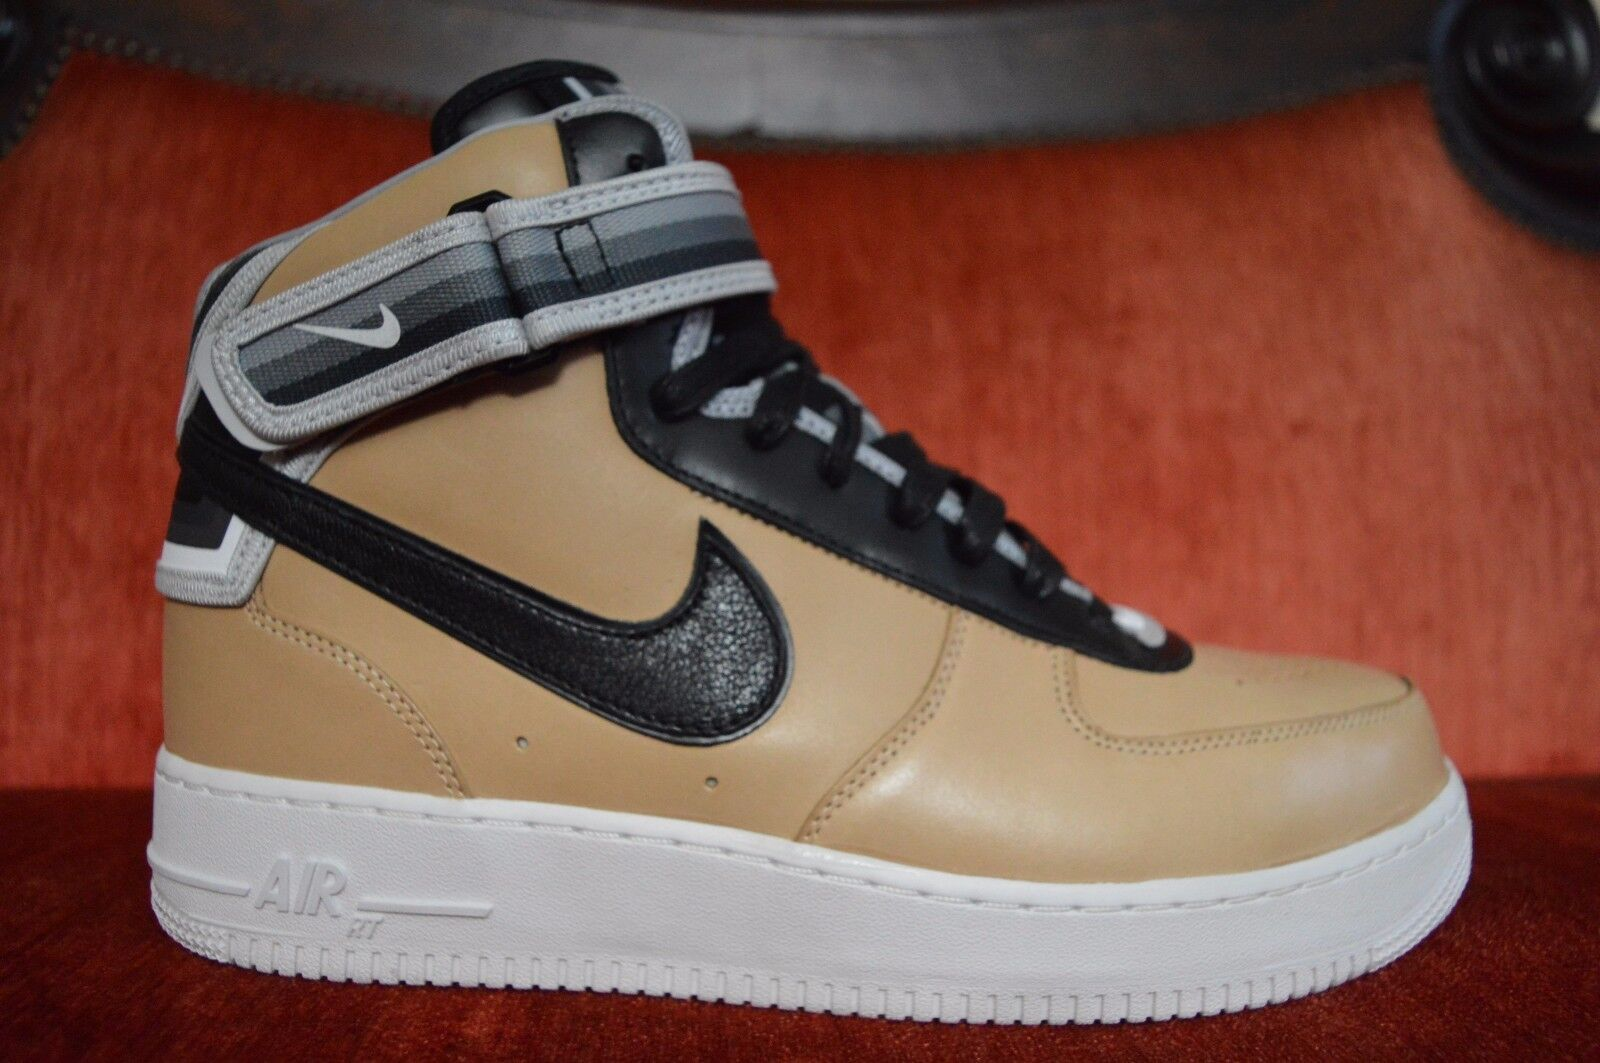 Nike Nike Nike Air Force 1 RT Riccardo Tisci Givenchy AF1 Mid Tan 677130 200 Size 11.5 7ed616